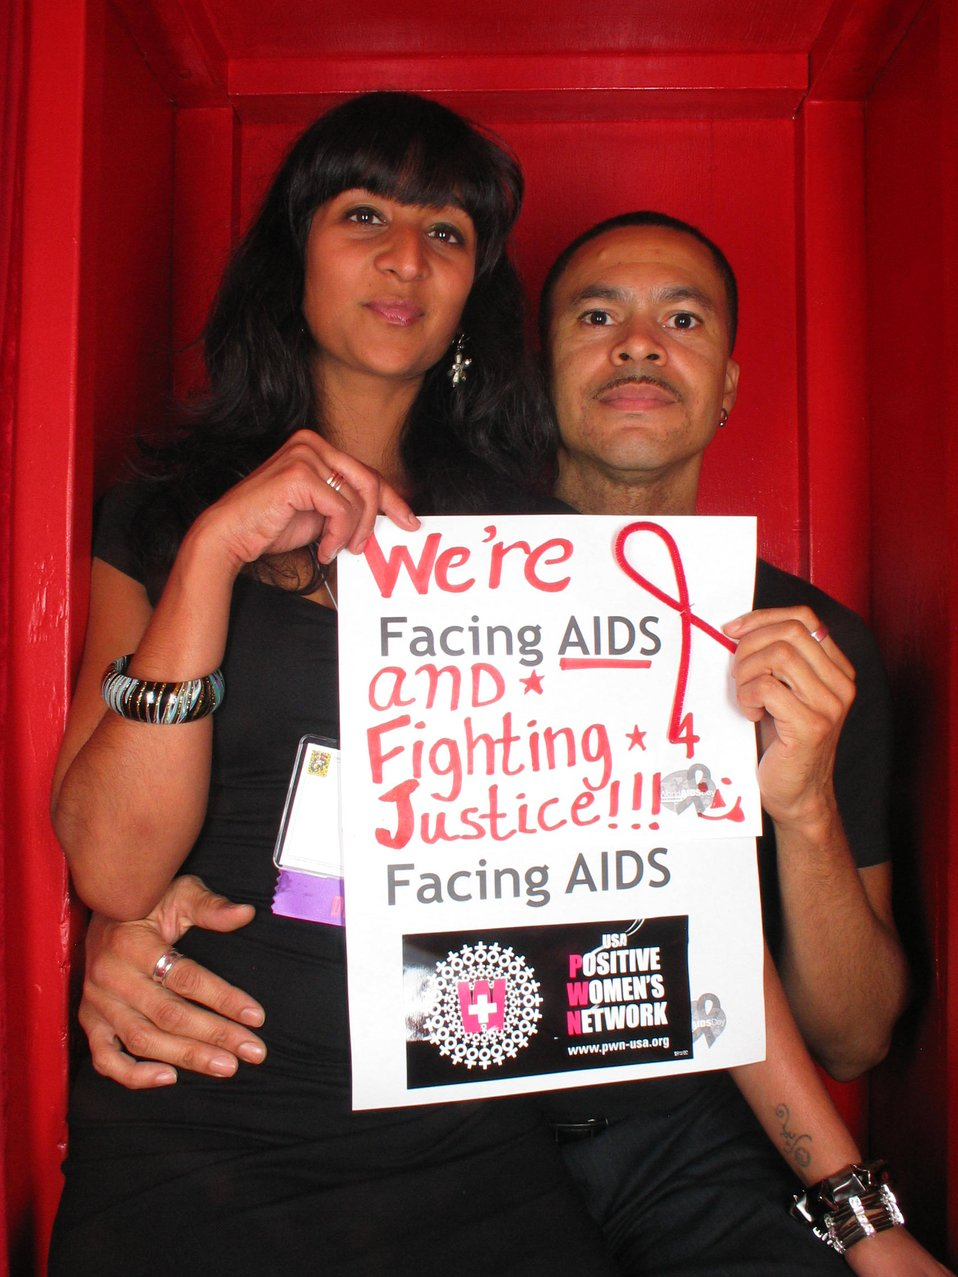 We're Facing AIDS and fighting 4 justice!!!